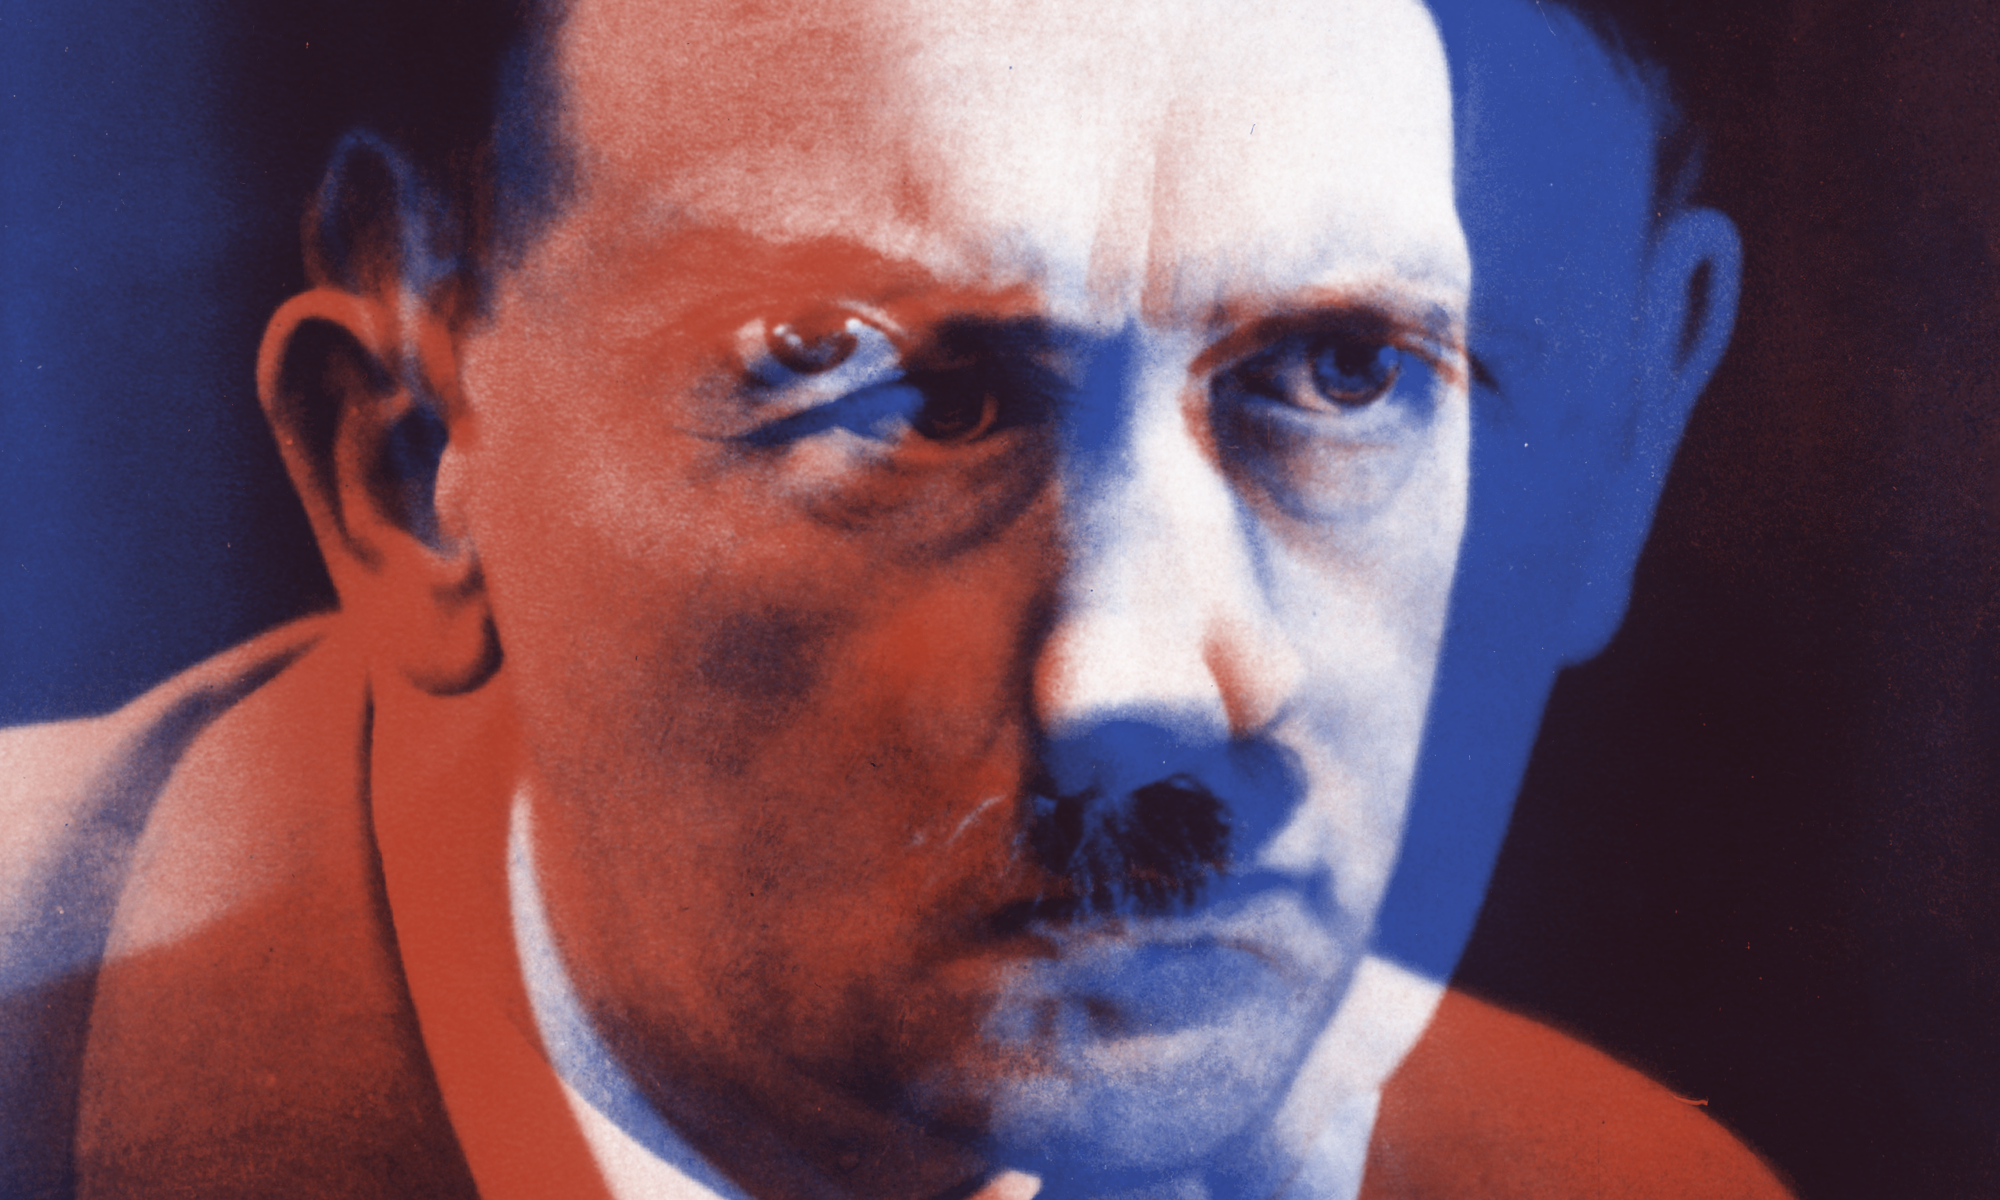 Why did Hitler take anabolic steroids 81